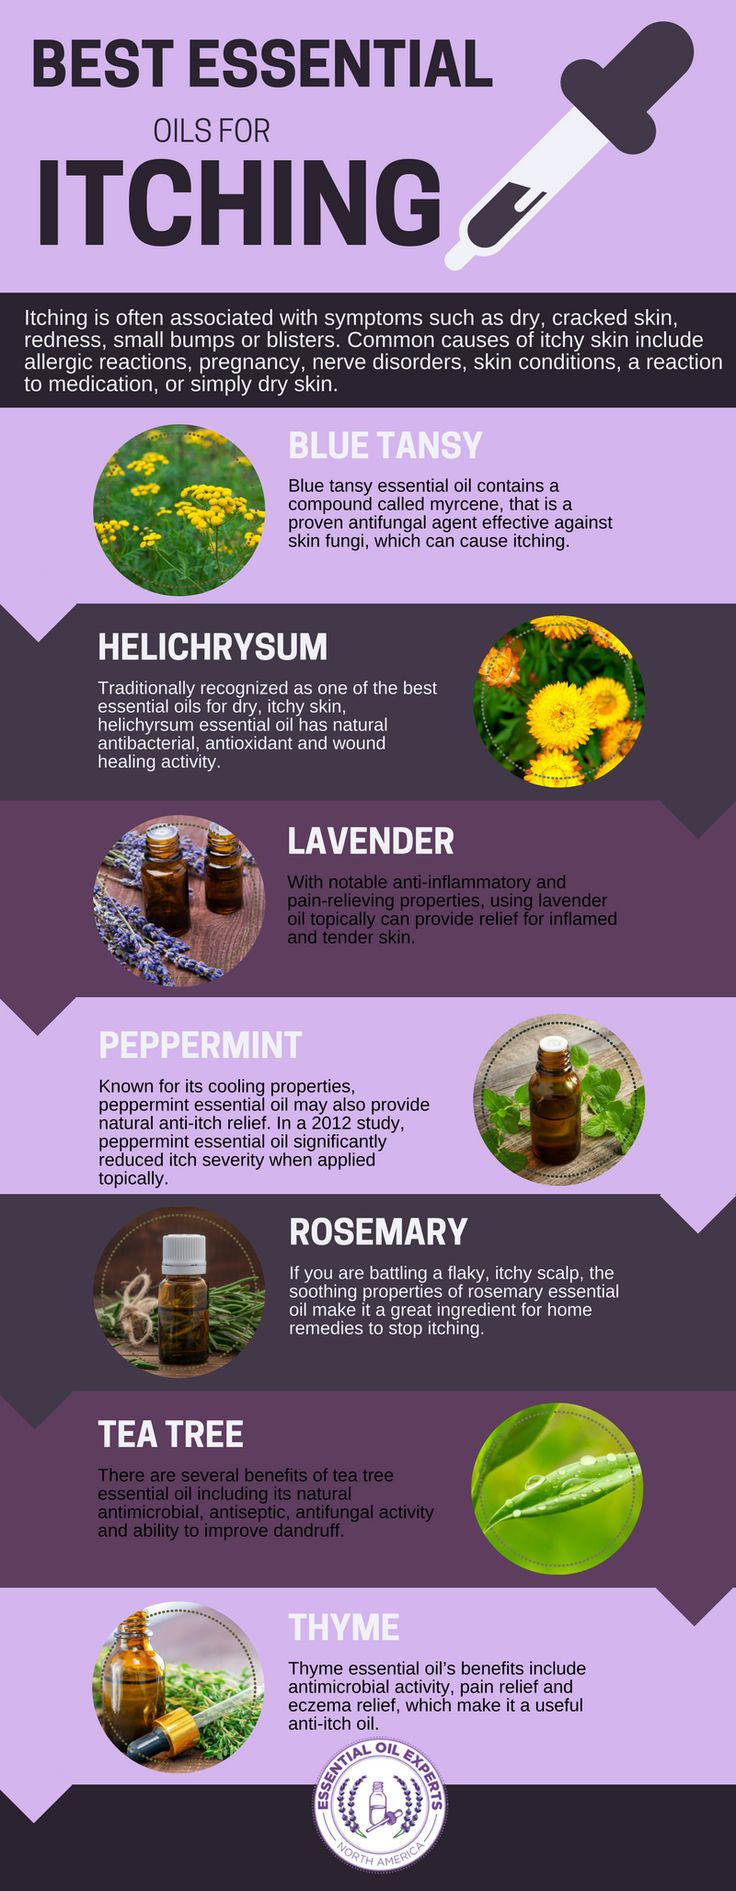 Best Essential Oils for Itching: Itchy Feet, Skin, Jock Itch & More